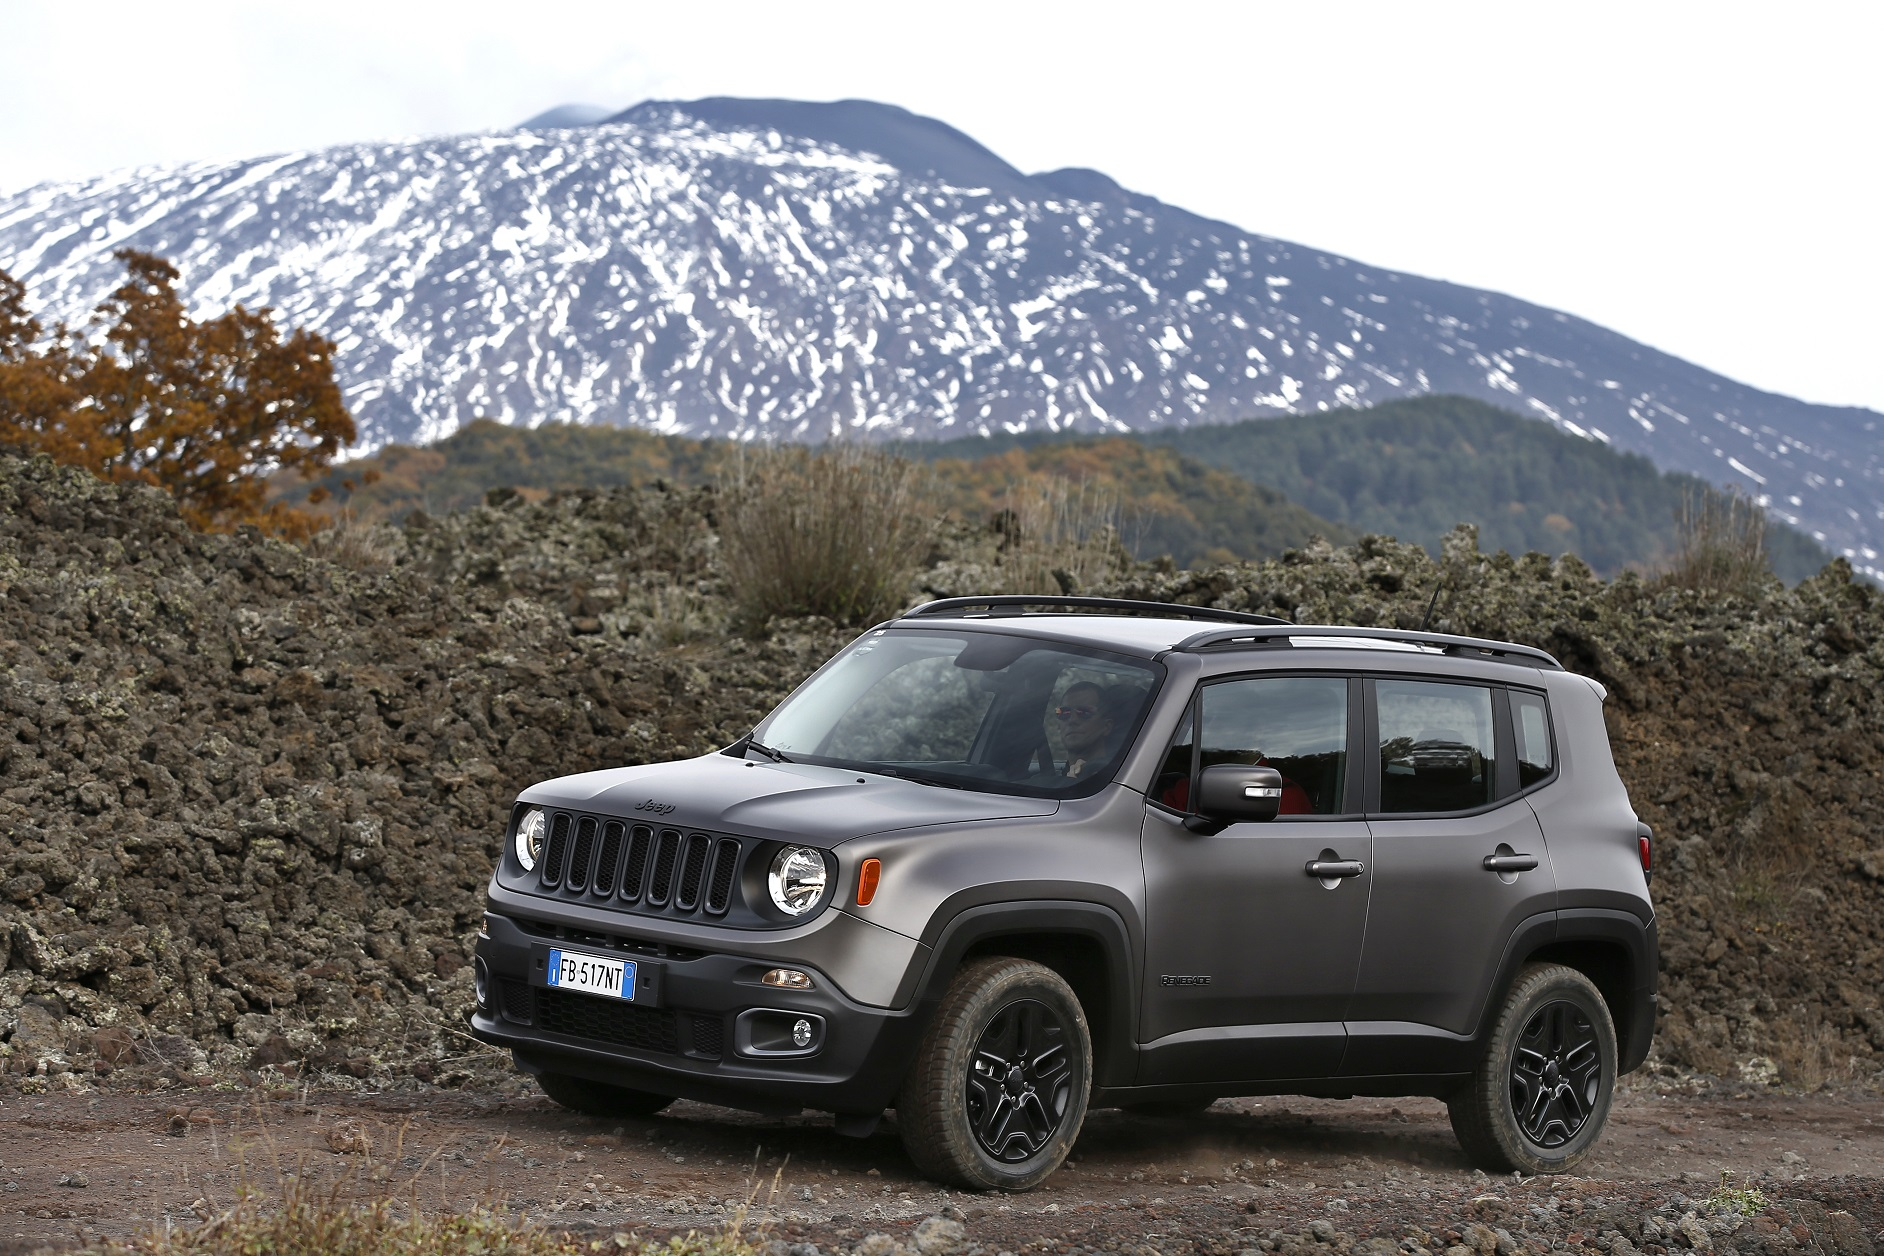 2016 Jeep Compass Latitude >> - Pressetexte - FCA Germany AG - Pressesystem